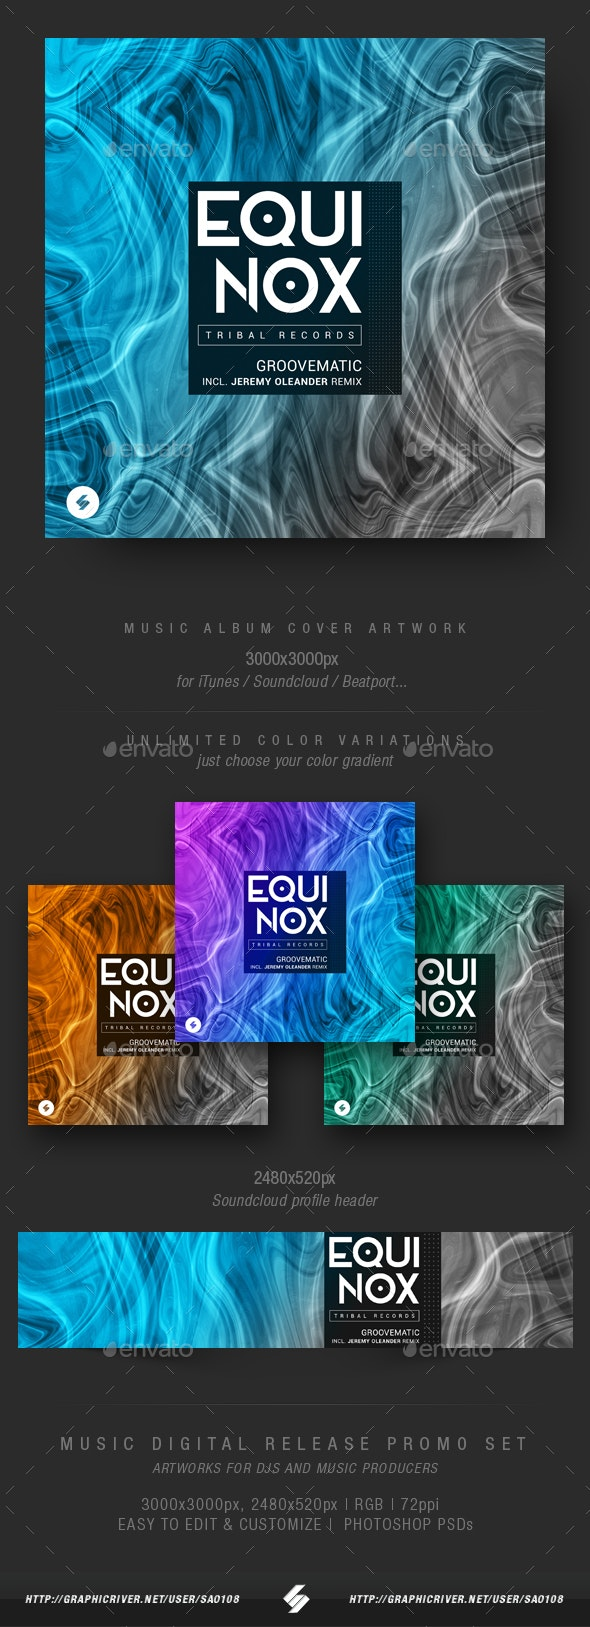 Equinox - Electronic Music Album Cover Artwork Template - Miscellaneous Social Media